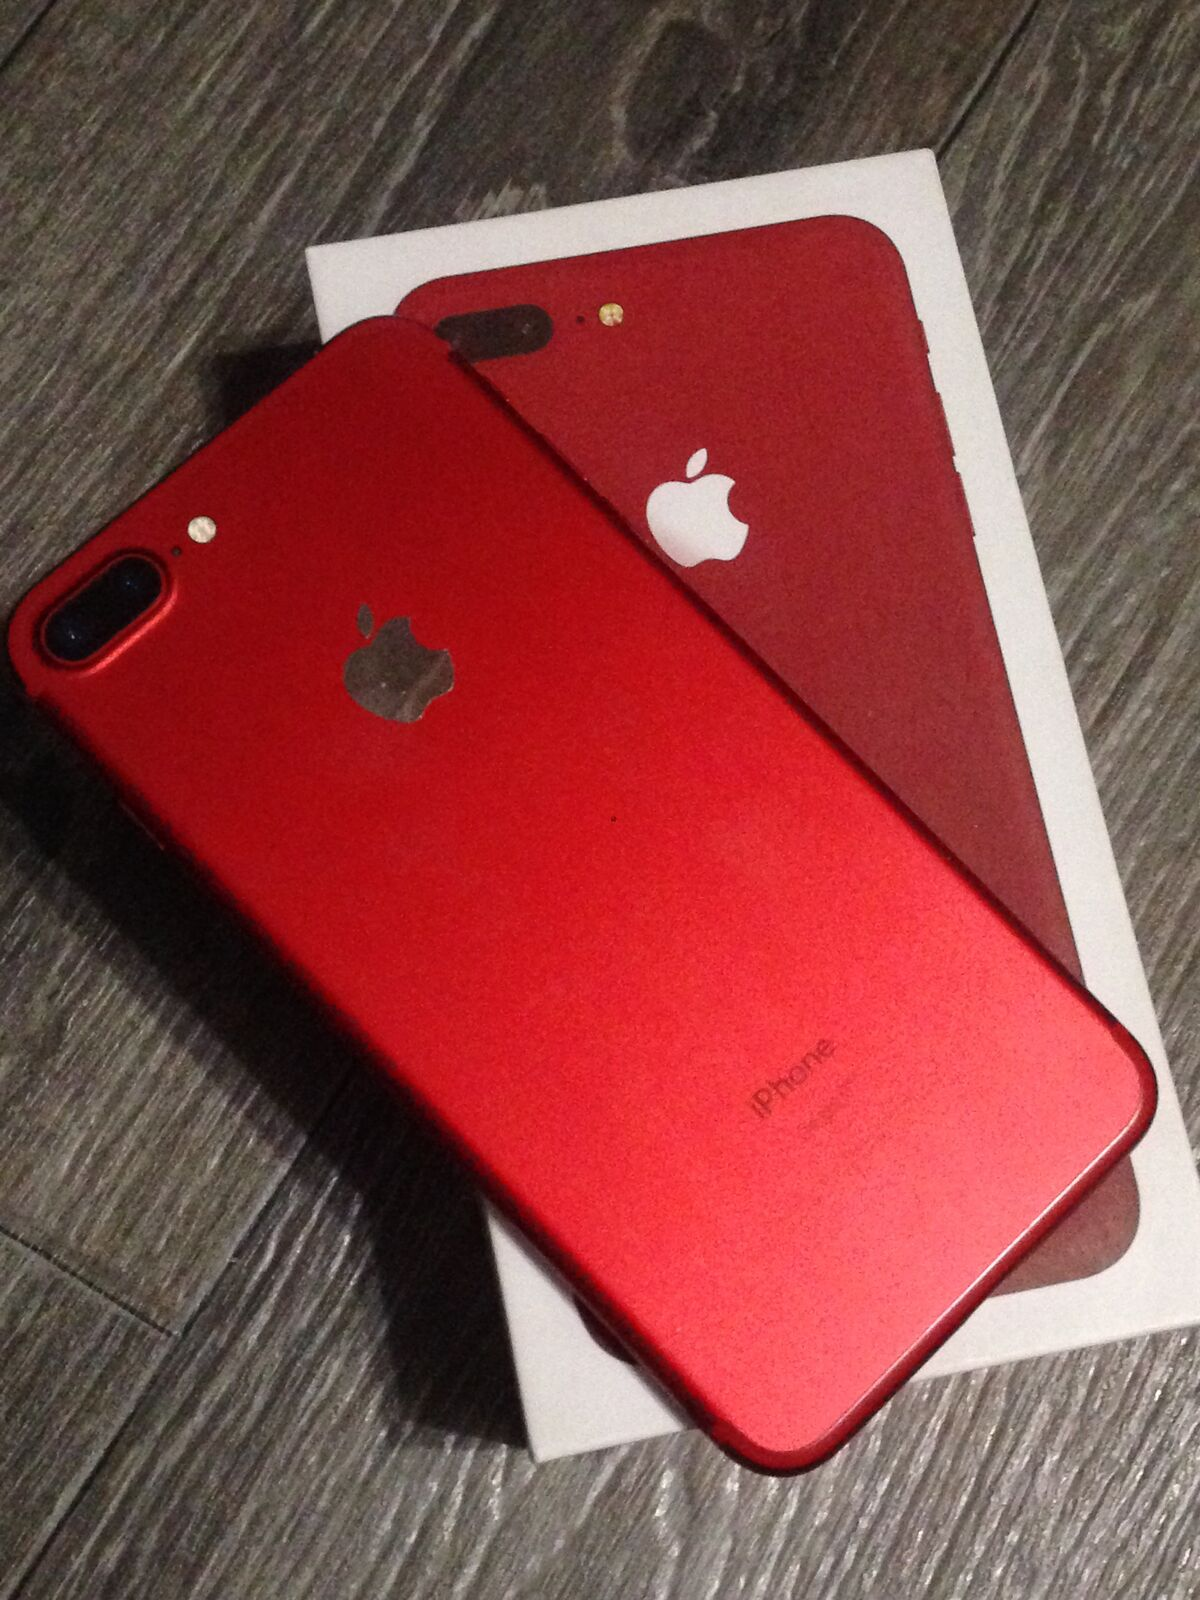 iPhone 7 Plus Red 128GB идеальный